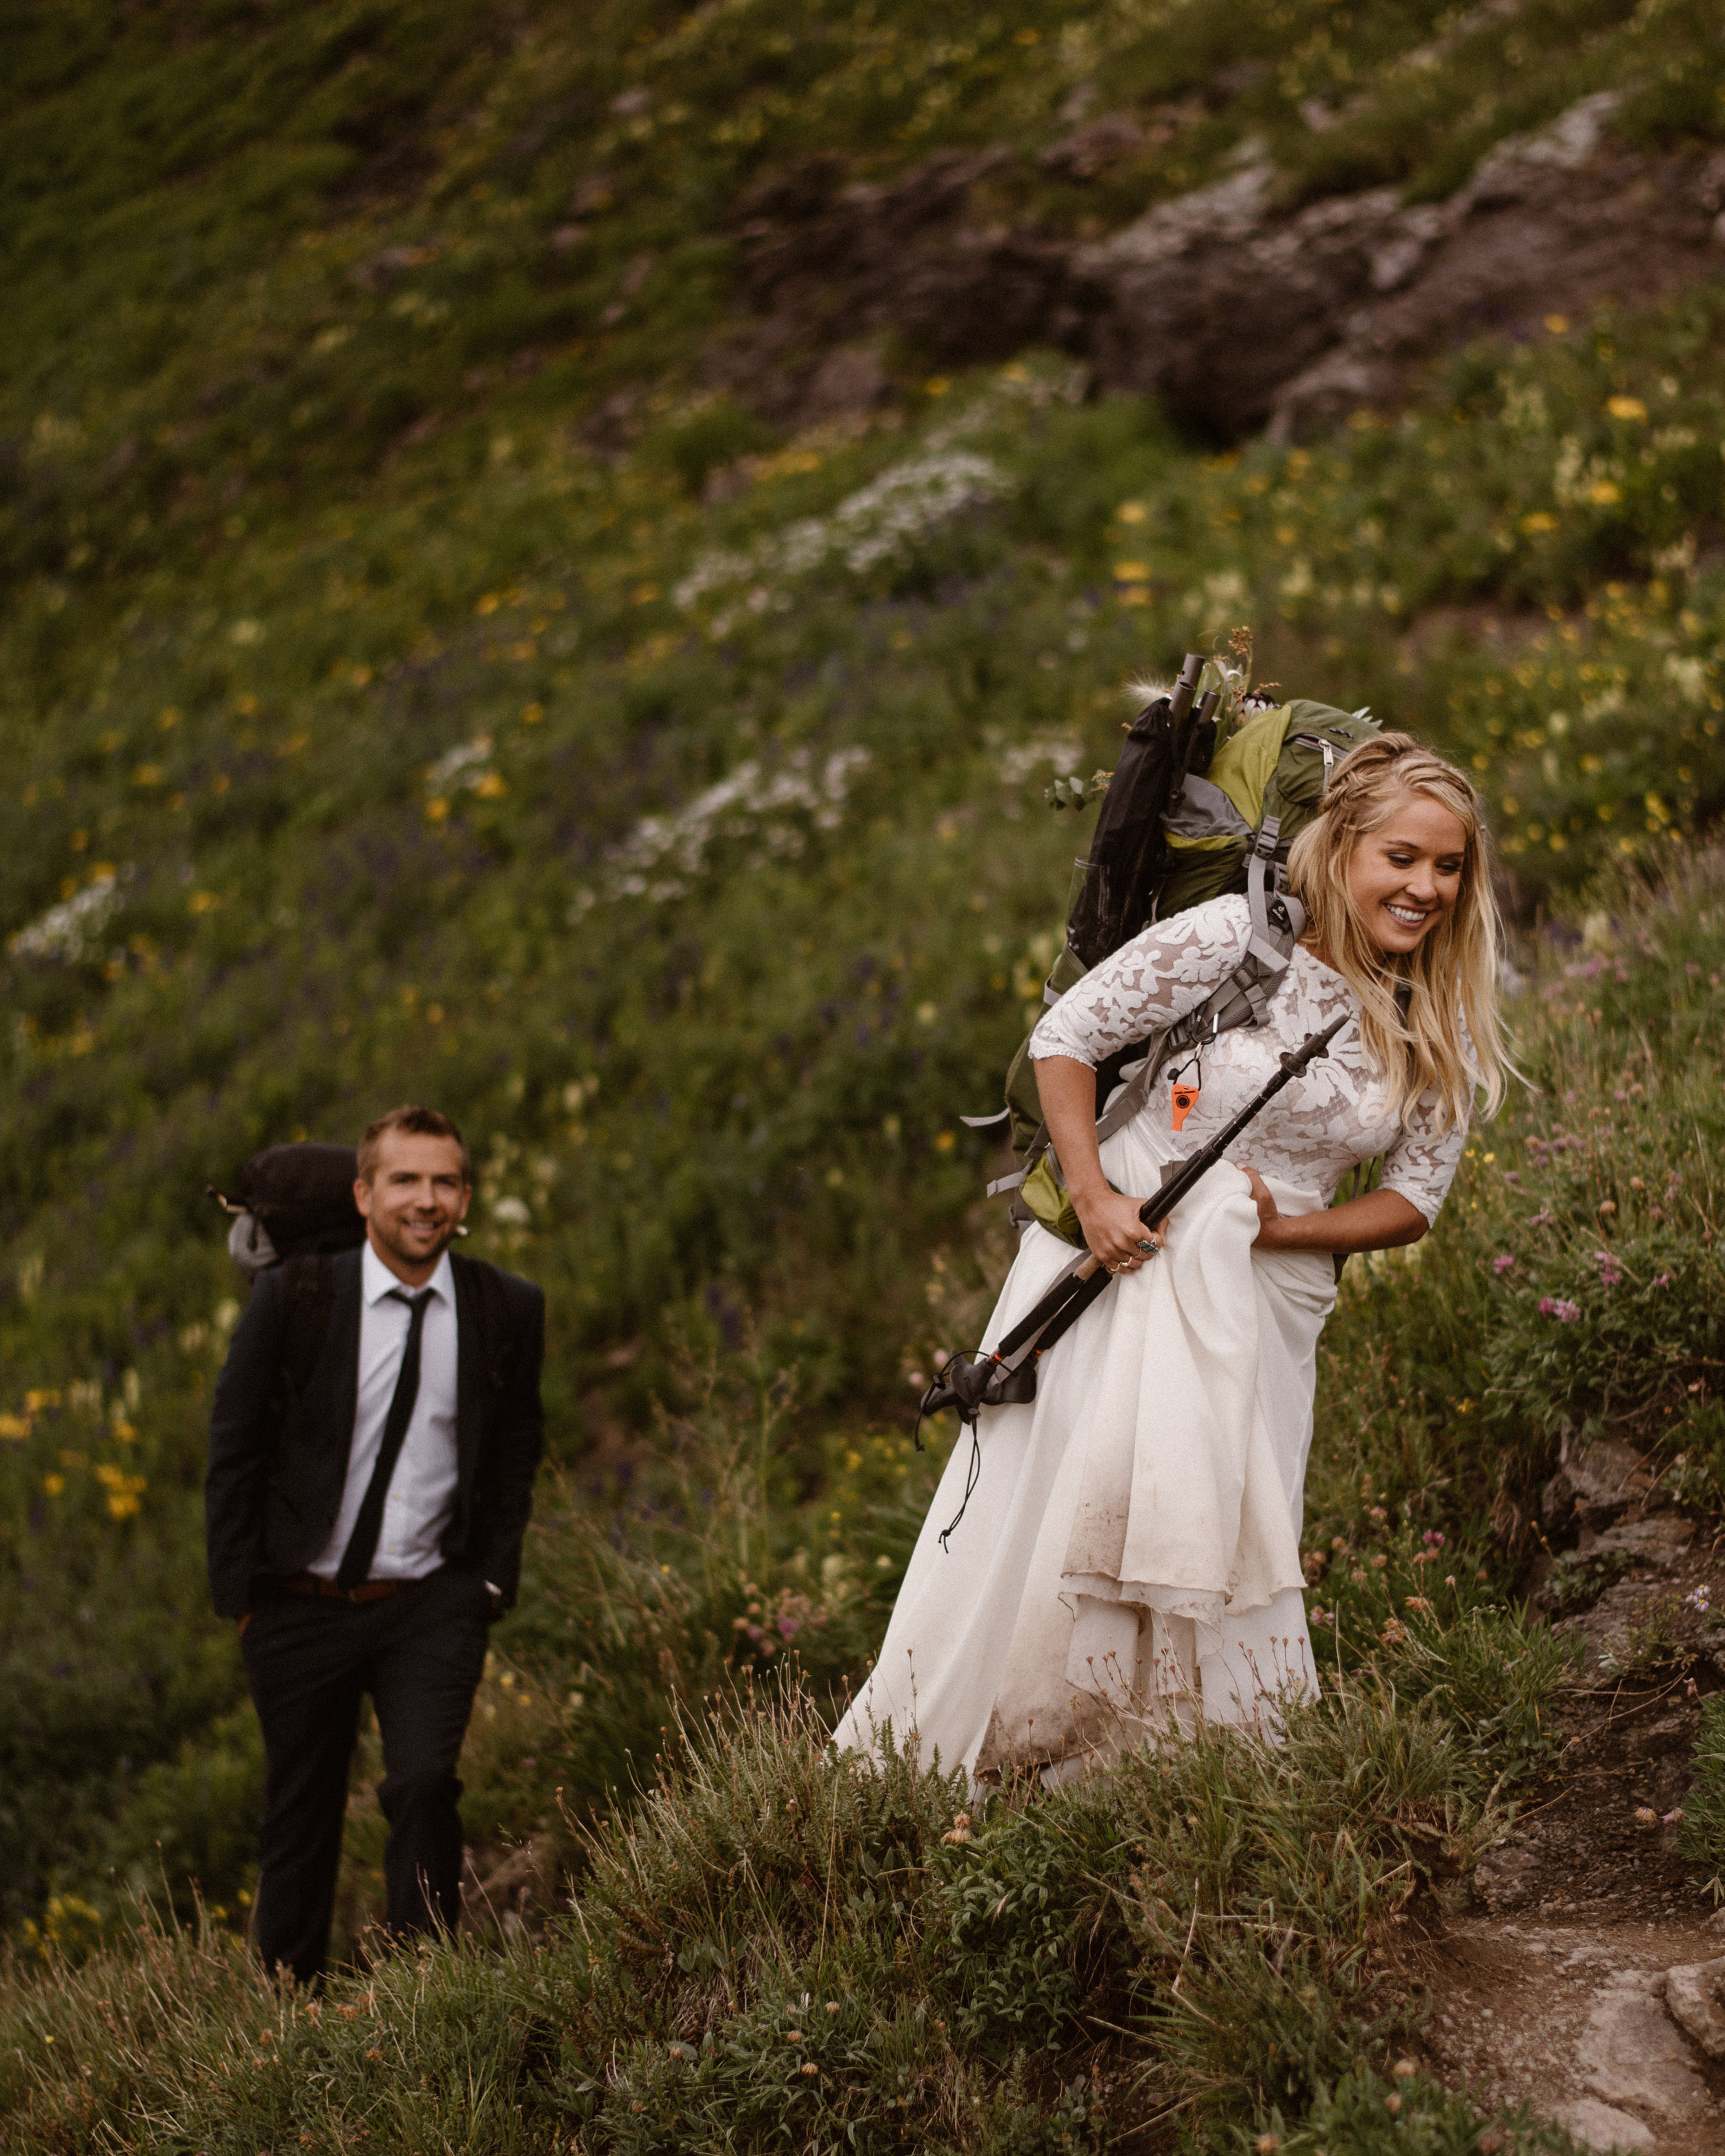 All-DayHiking Elopements - Want get up early, hit the trail before dawn, and have an incredibly beautiful place all to yourself to say your vows at sunrise? Hiking elopements are one of the most incredible ways to elope! We'd be stoked to carry our gear up a 14,000 ft mountain and guide you up an incredible trail to get married! Yeah we're serious.